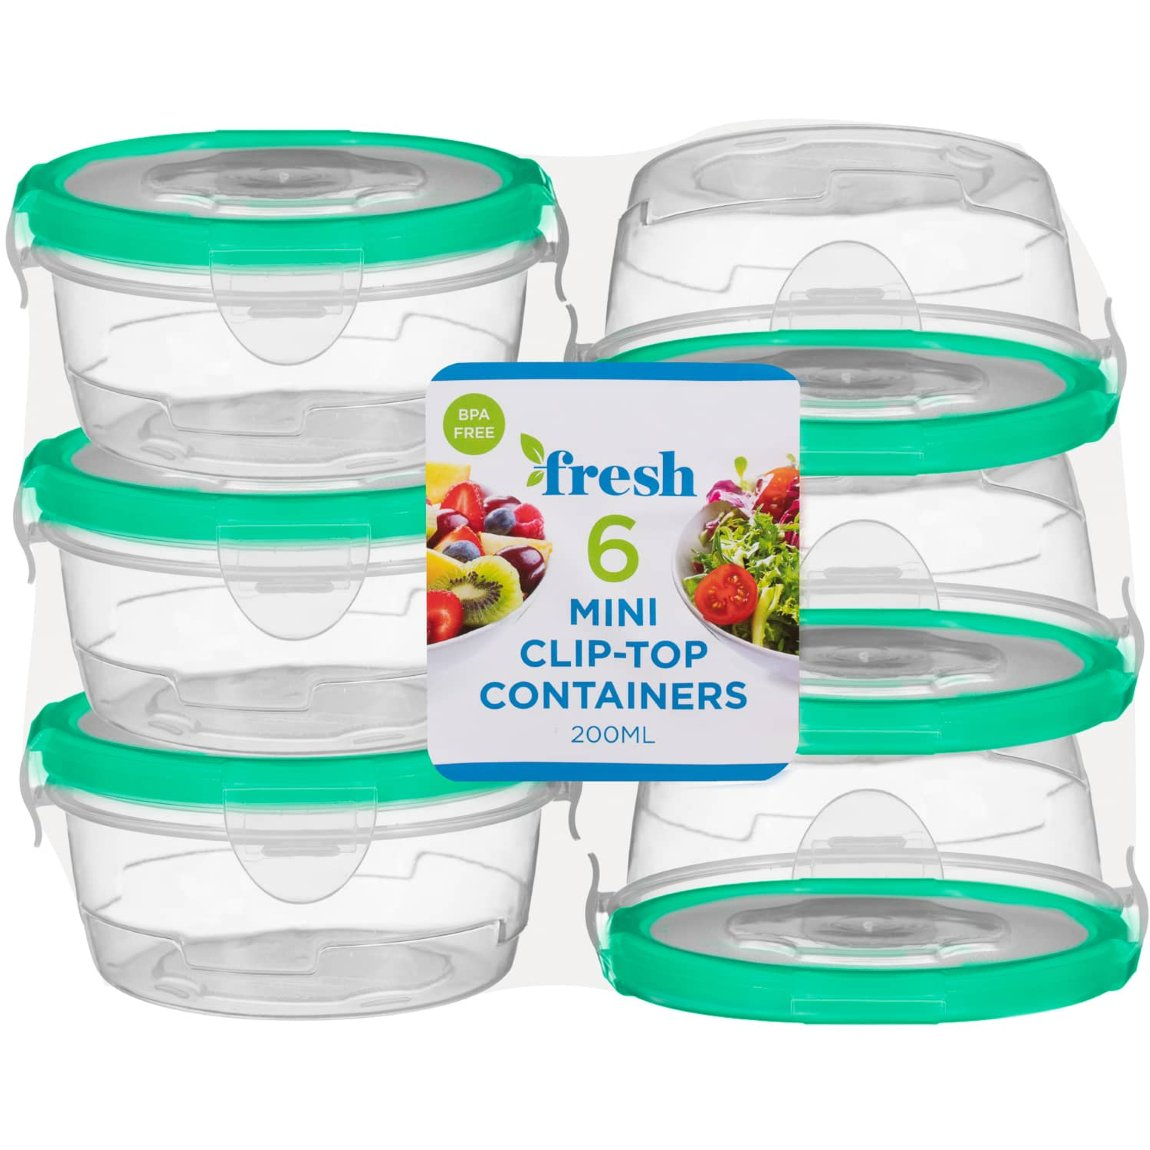 Round Mini Clip Top Containers 6pk - Green